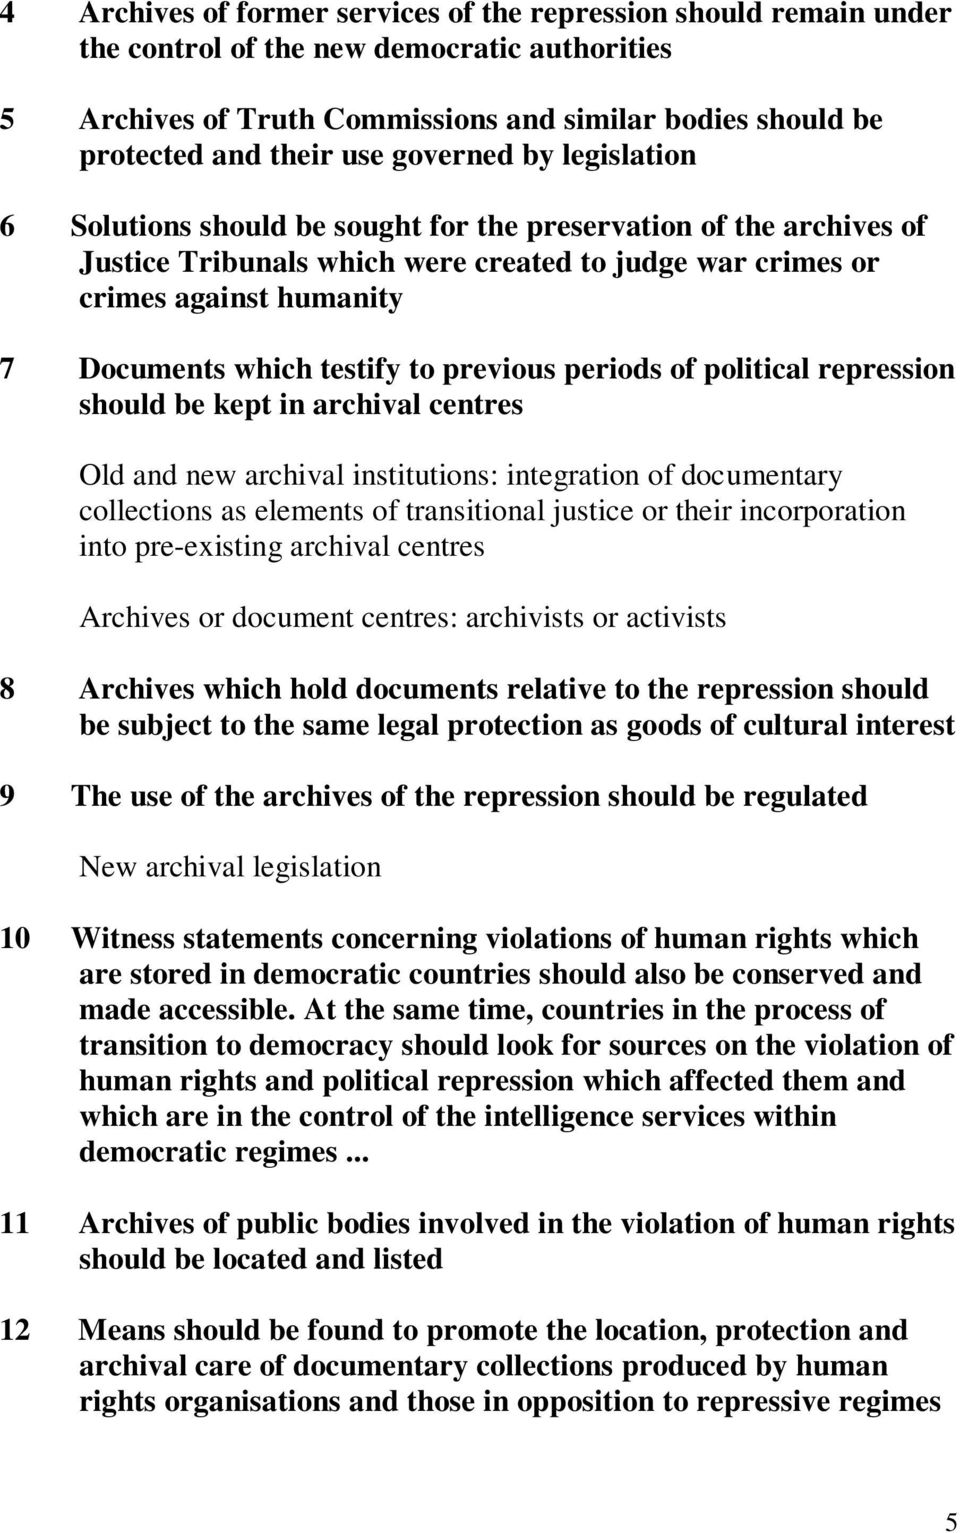 testify to previous periods of political repression should be kept in archival centres Old and new archival institutions: integration of documentary collections as elements of transitional justice or